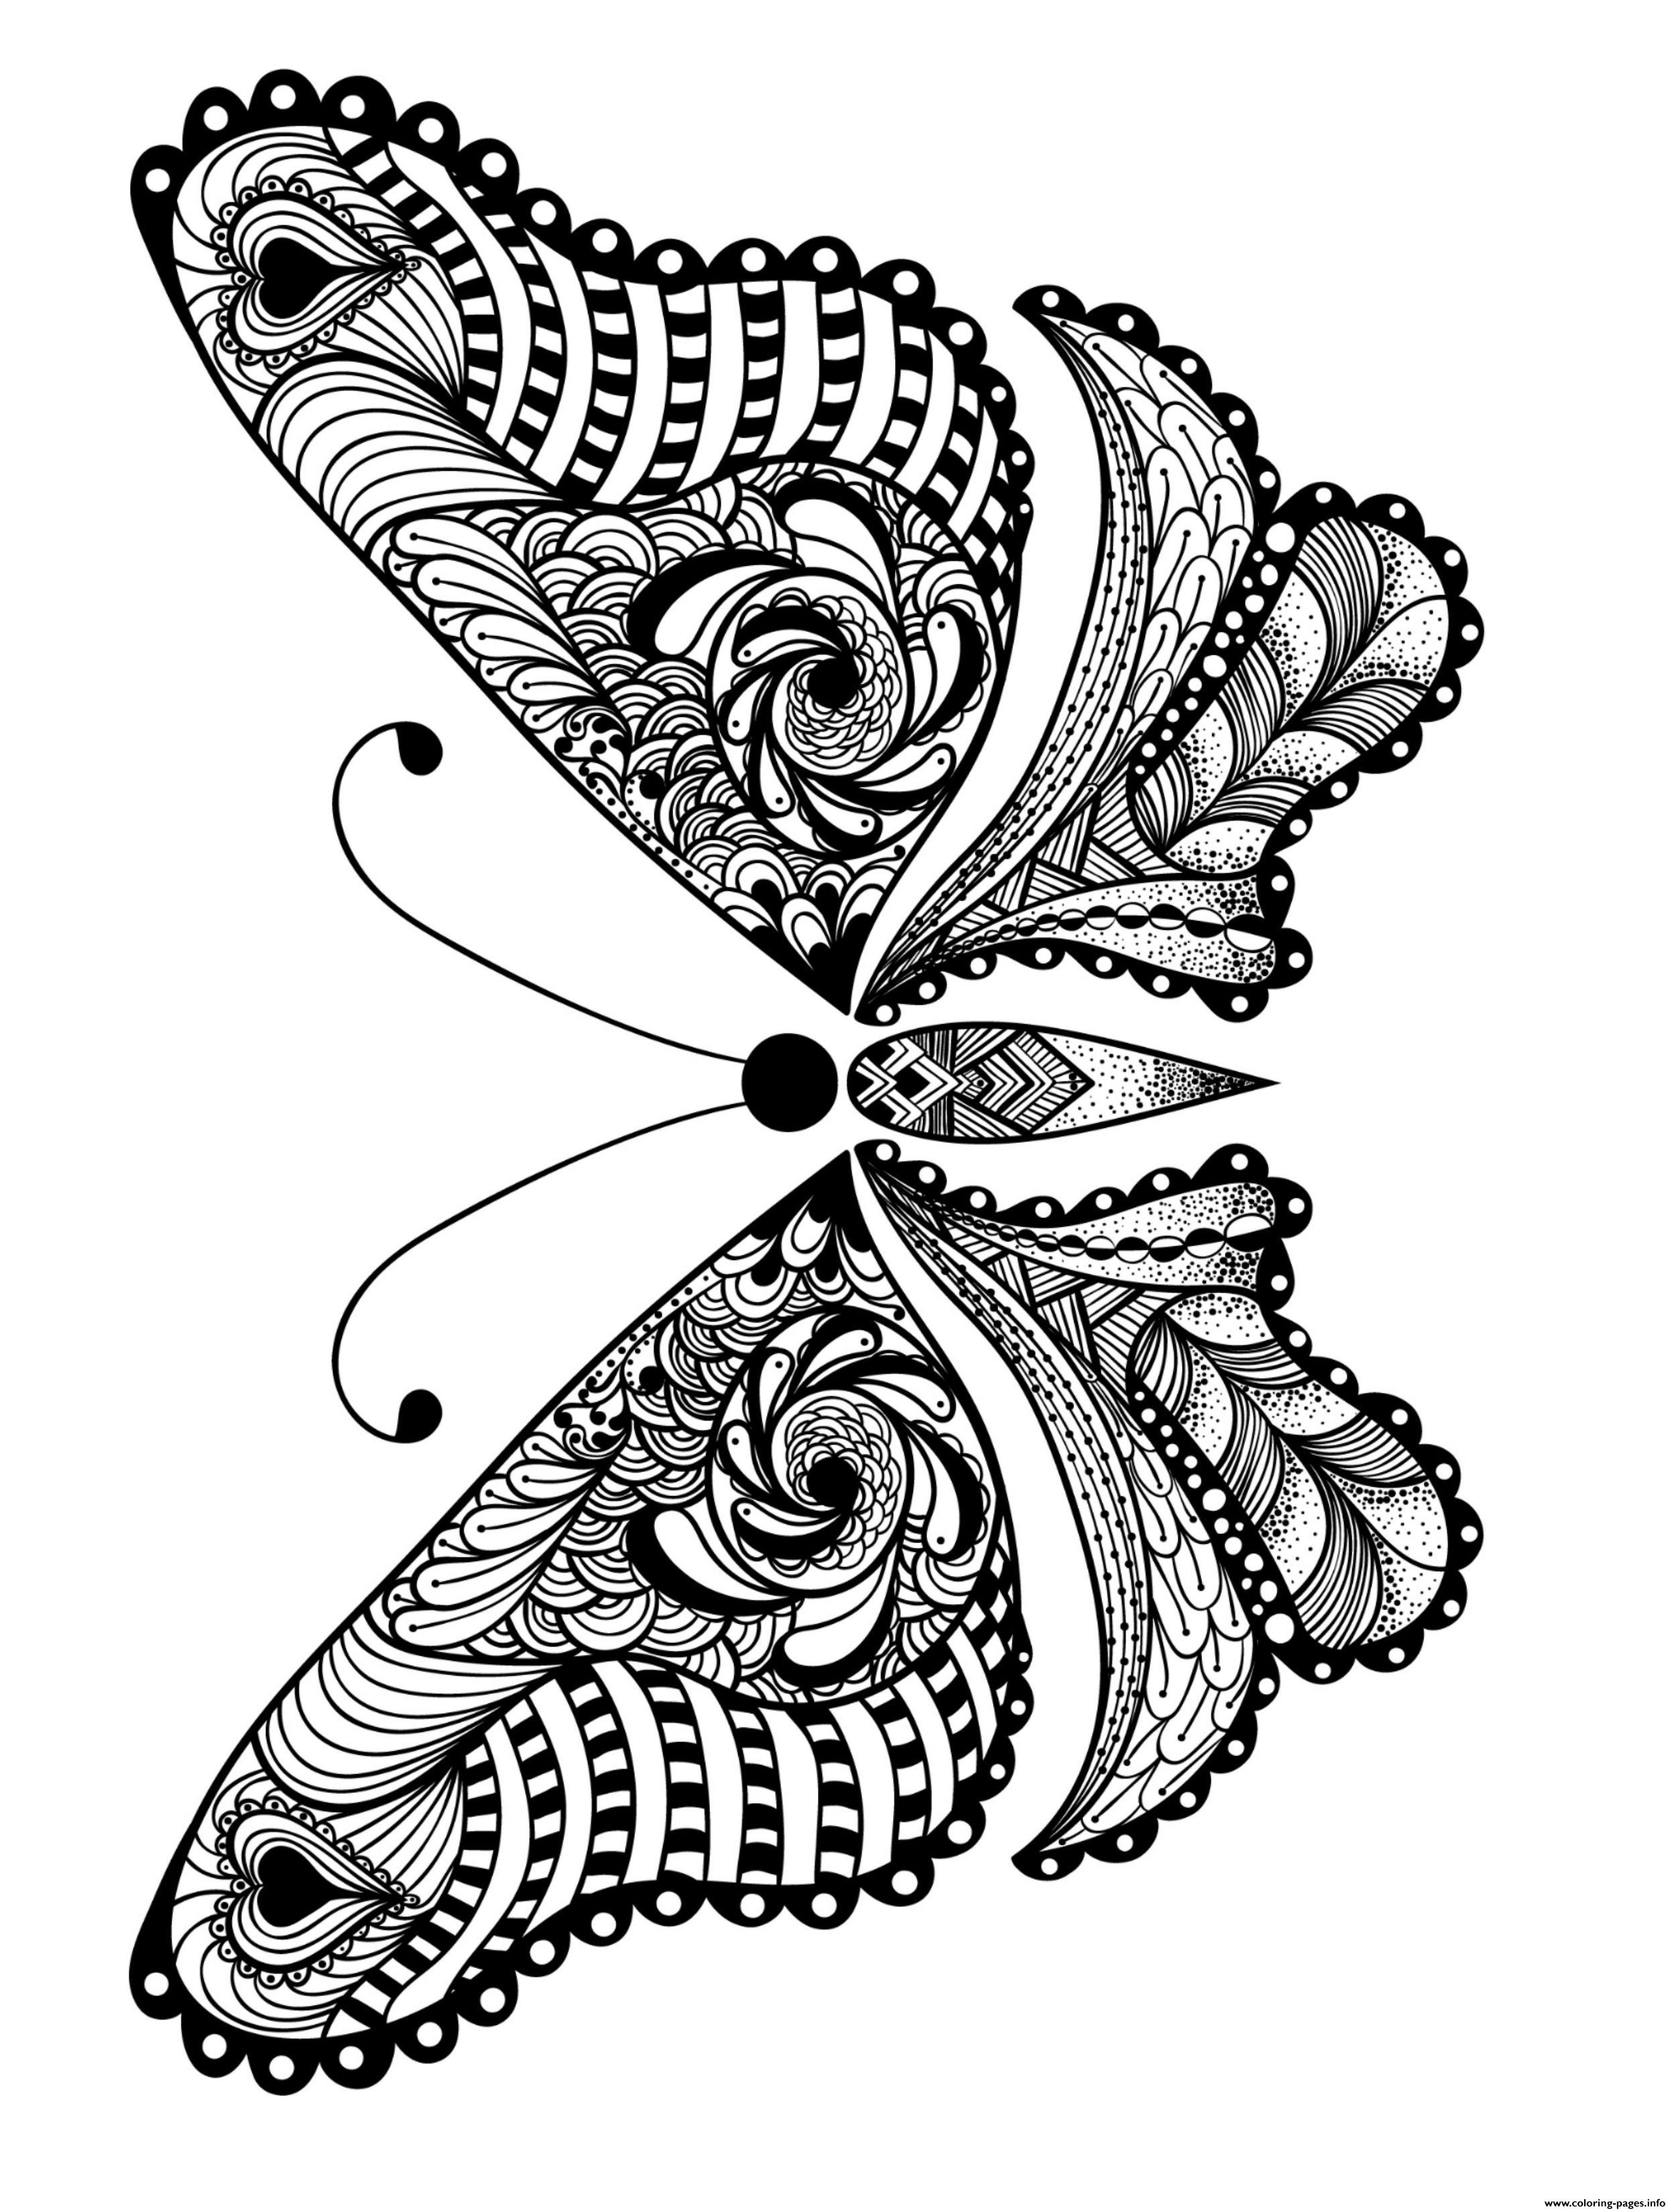 Advanced Insect Animal Adult Coloring Pages Printable | free printable coloring pages for adults animals